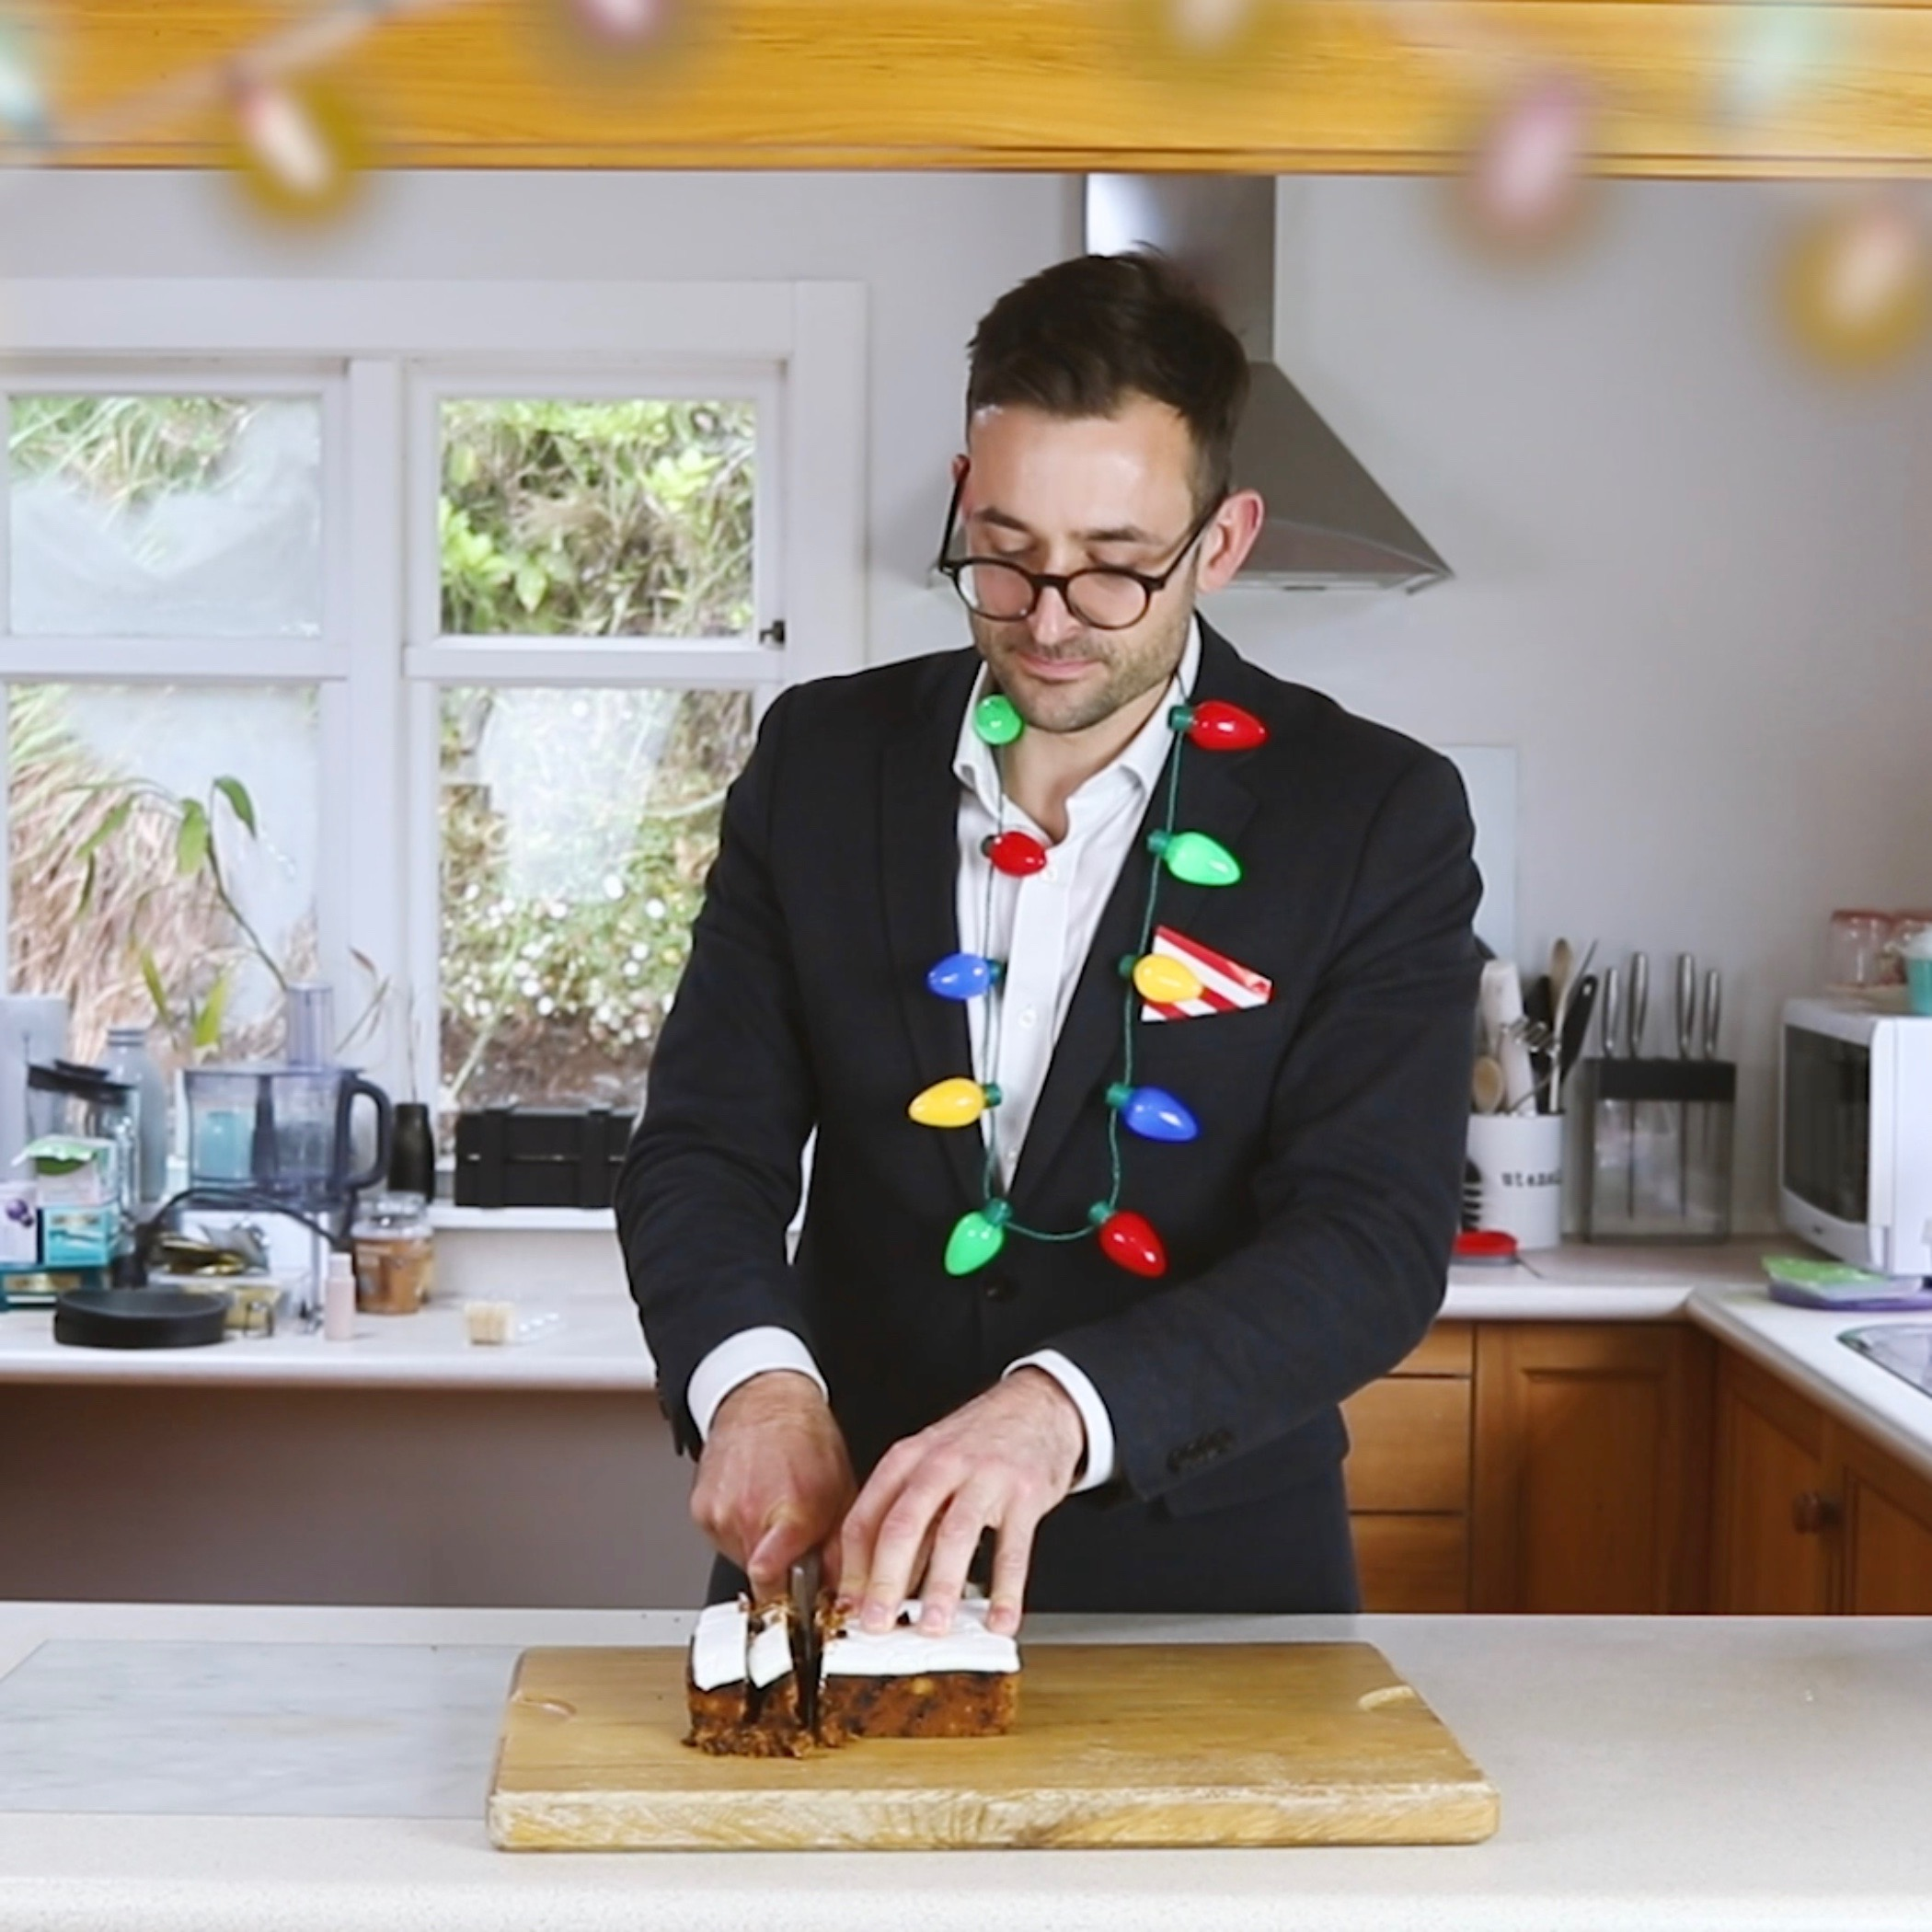 Be careful when cutting your Christmas cake.